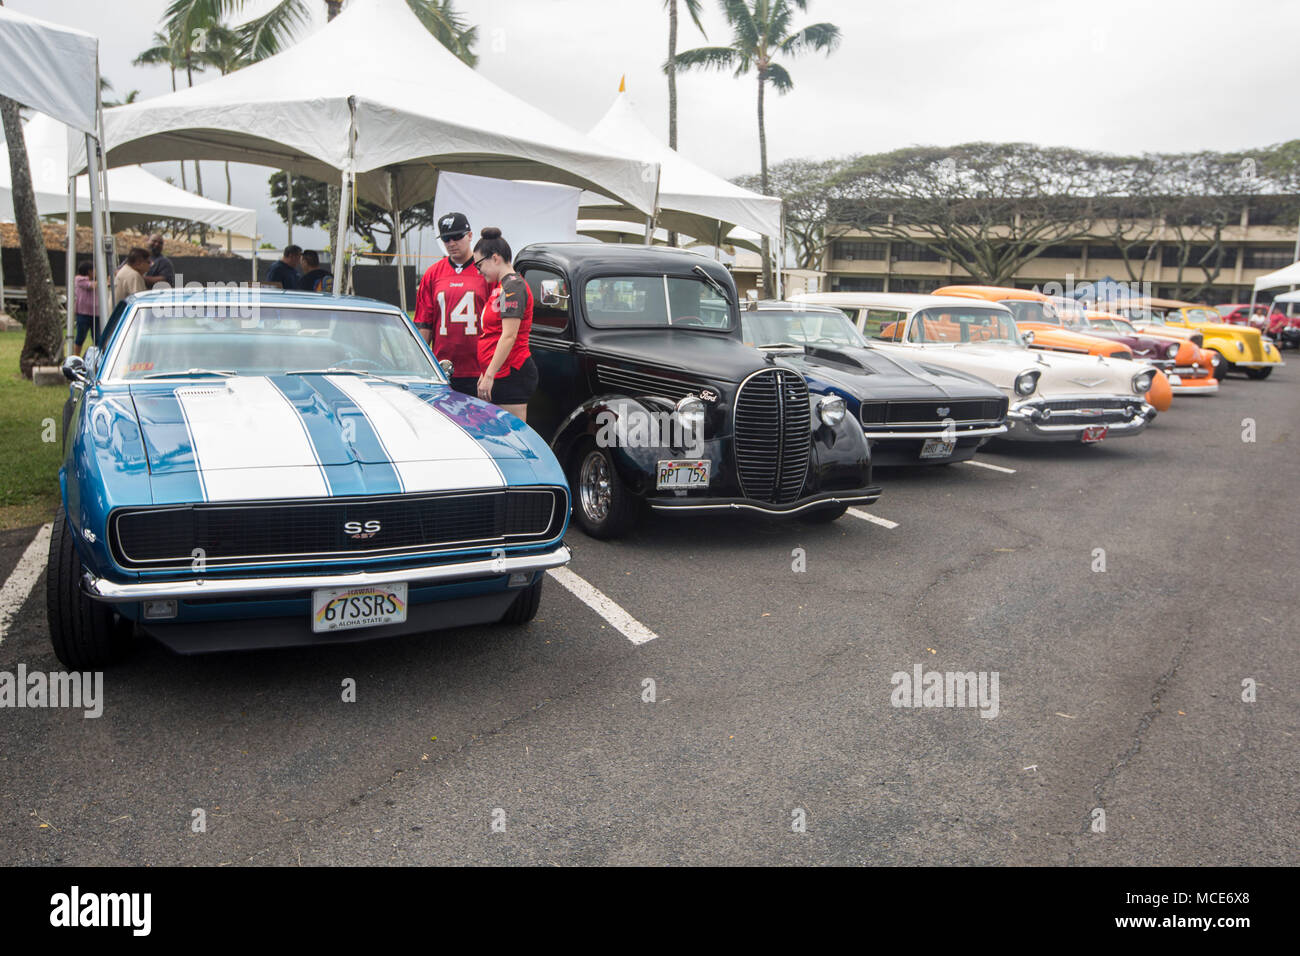 Hawaii Feb 24 Stockfotos & Hawaii Feb 24 Bilder - Alamy